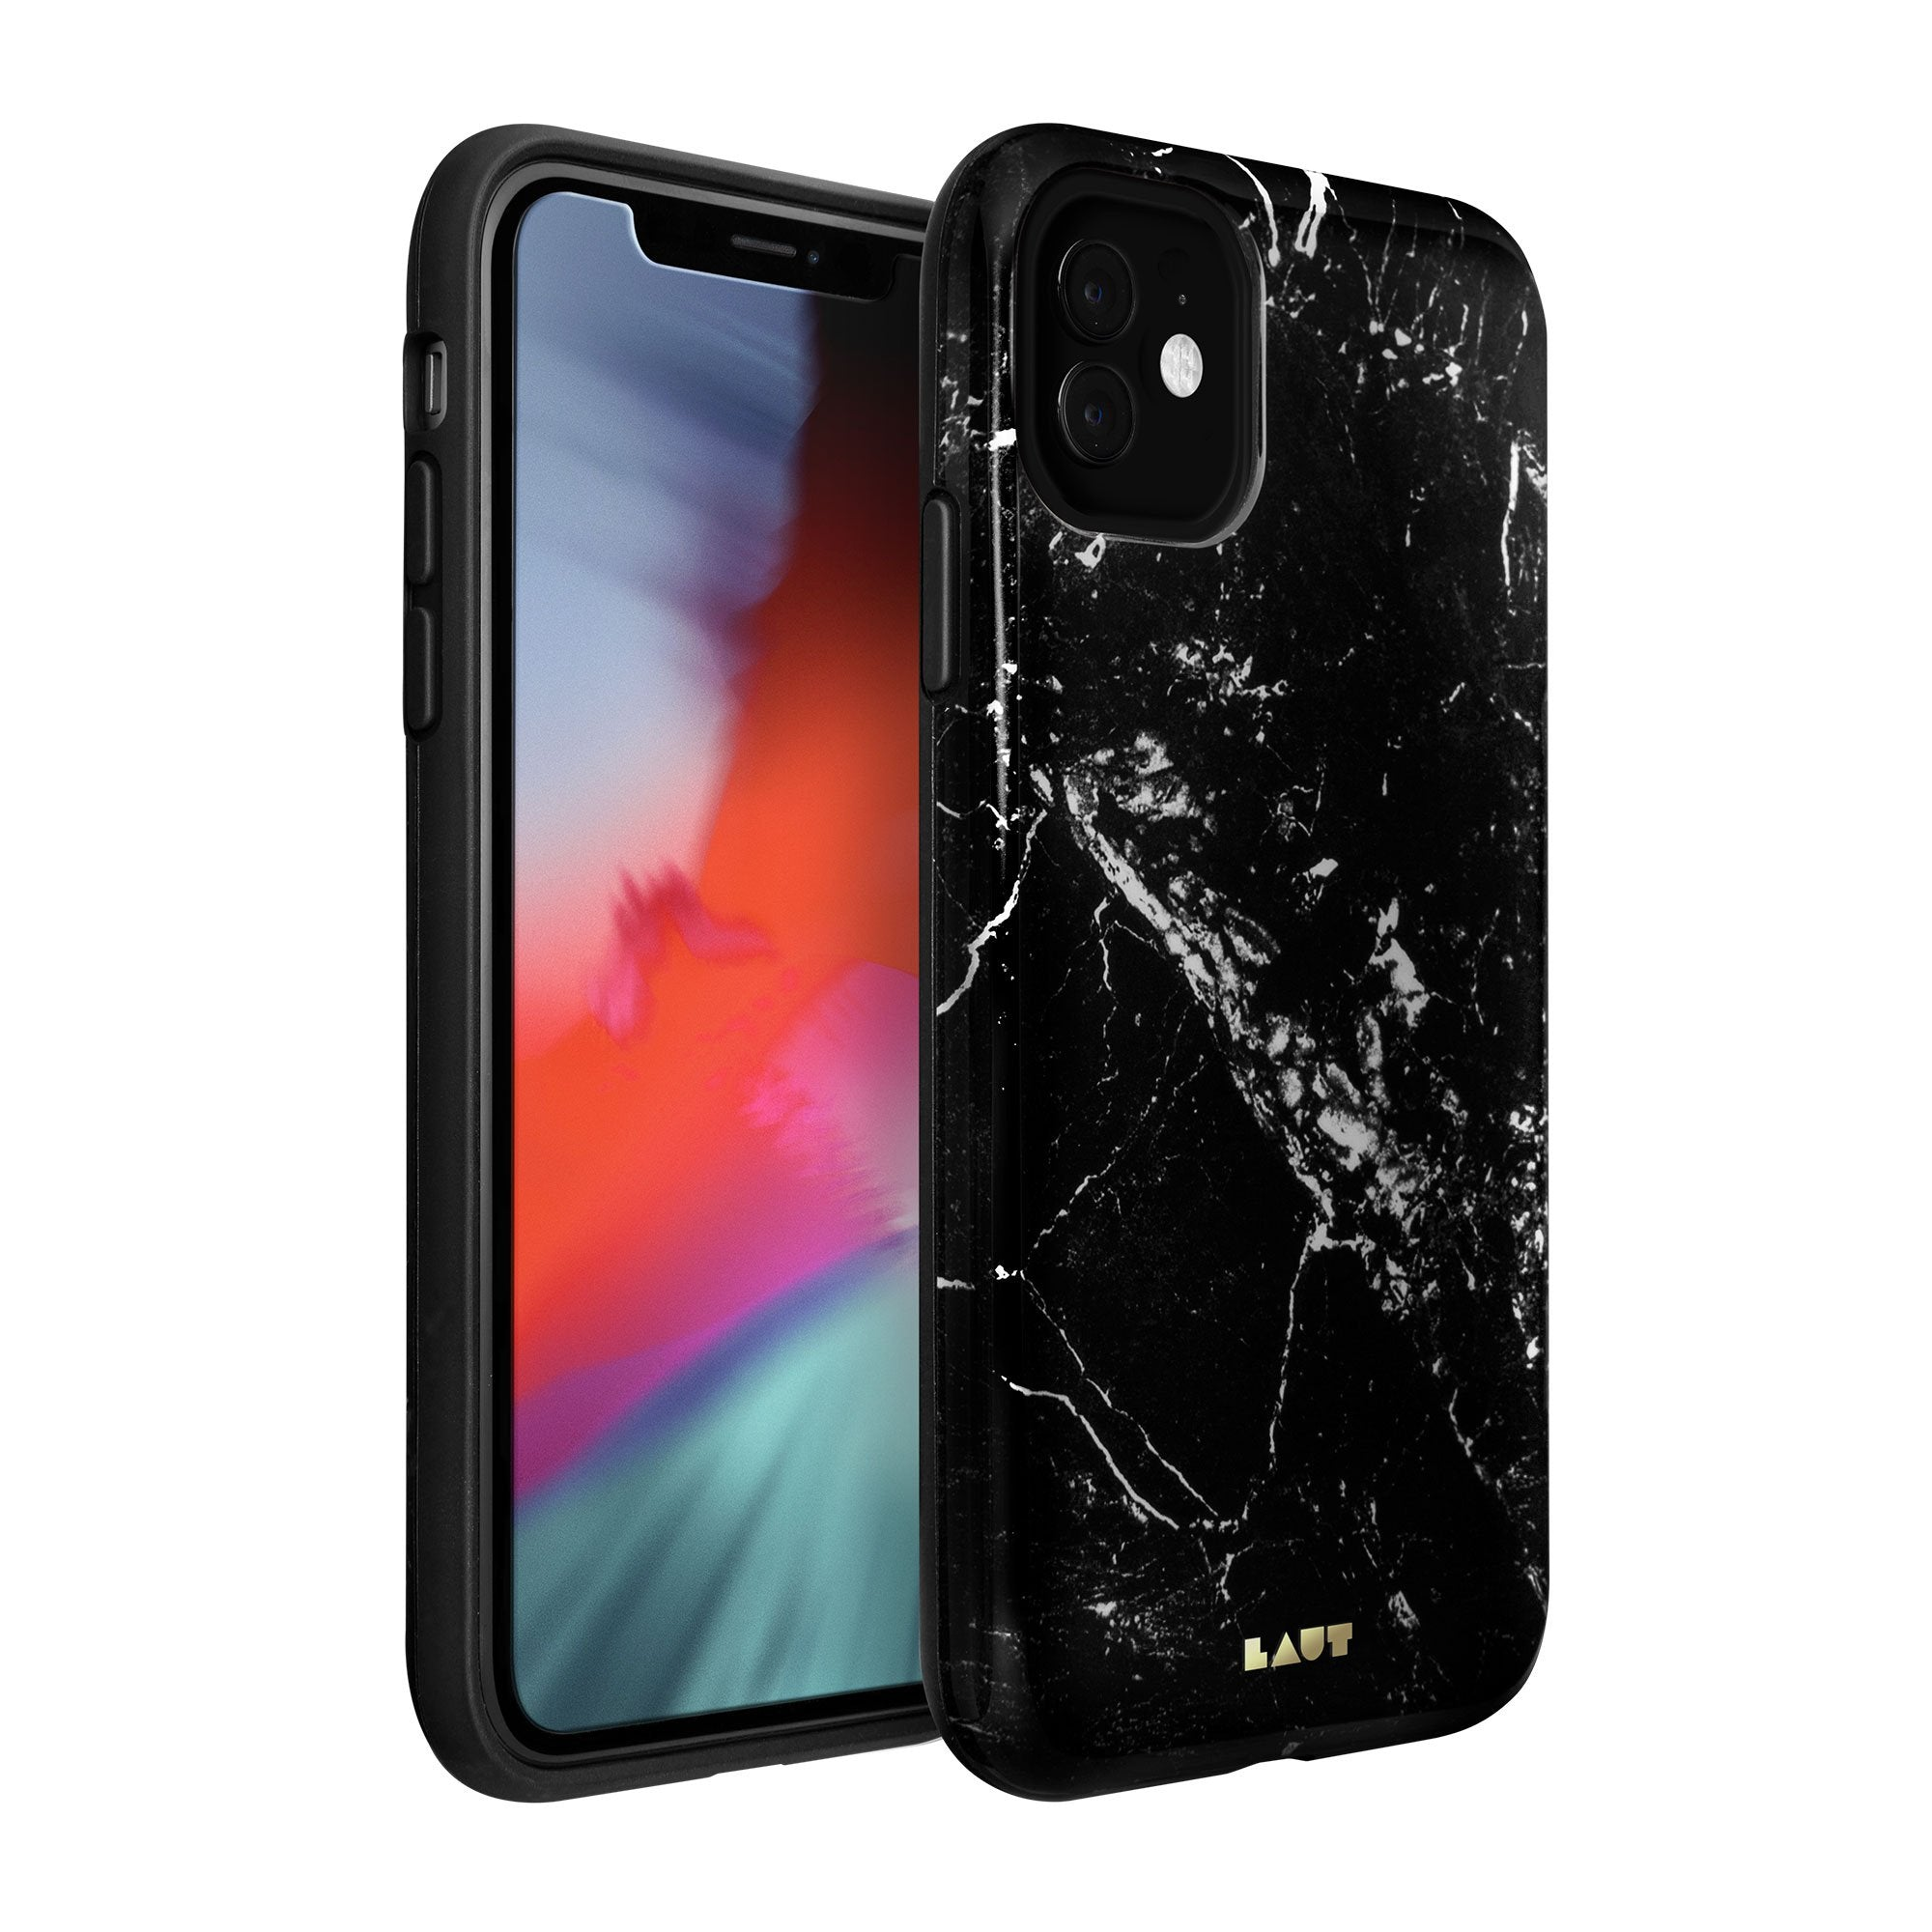 HUEX ELEMENTS for iPhone 11 Series - LAUT Japan